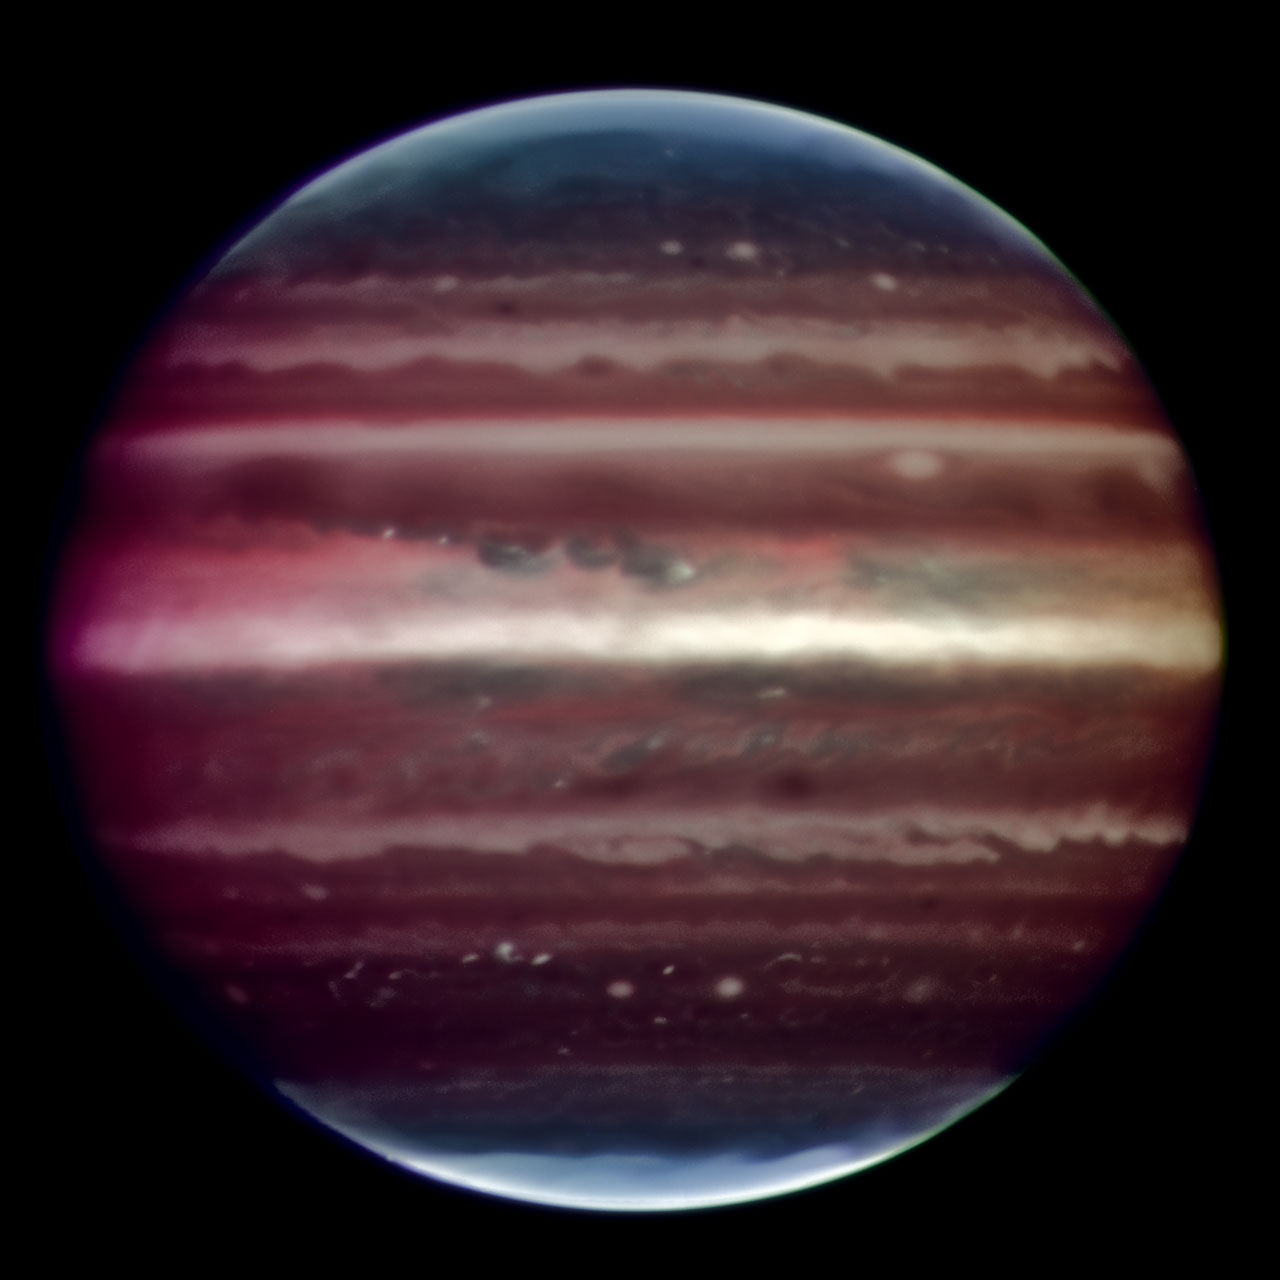 real planet jupiter - photo #26